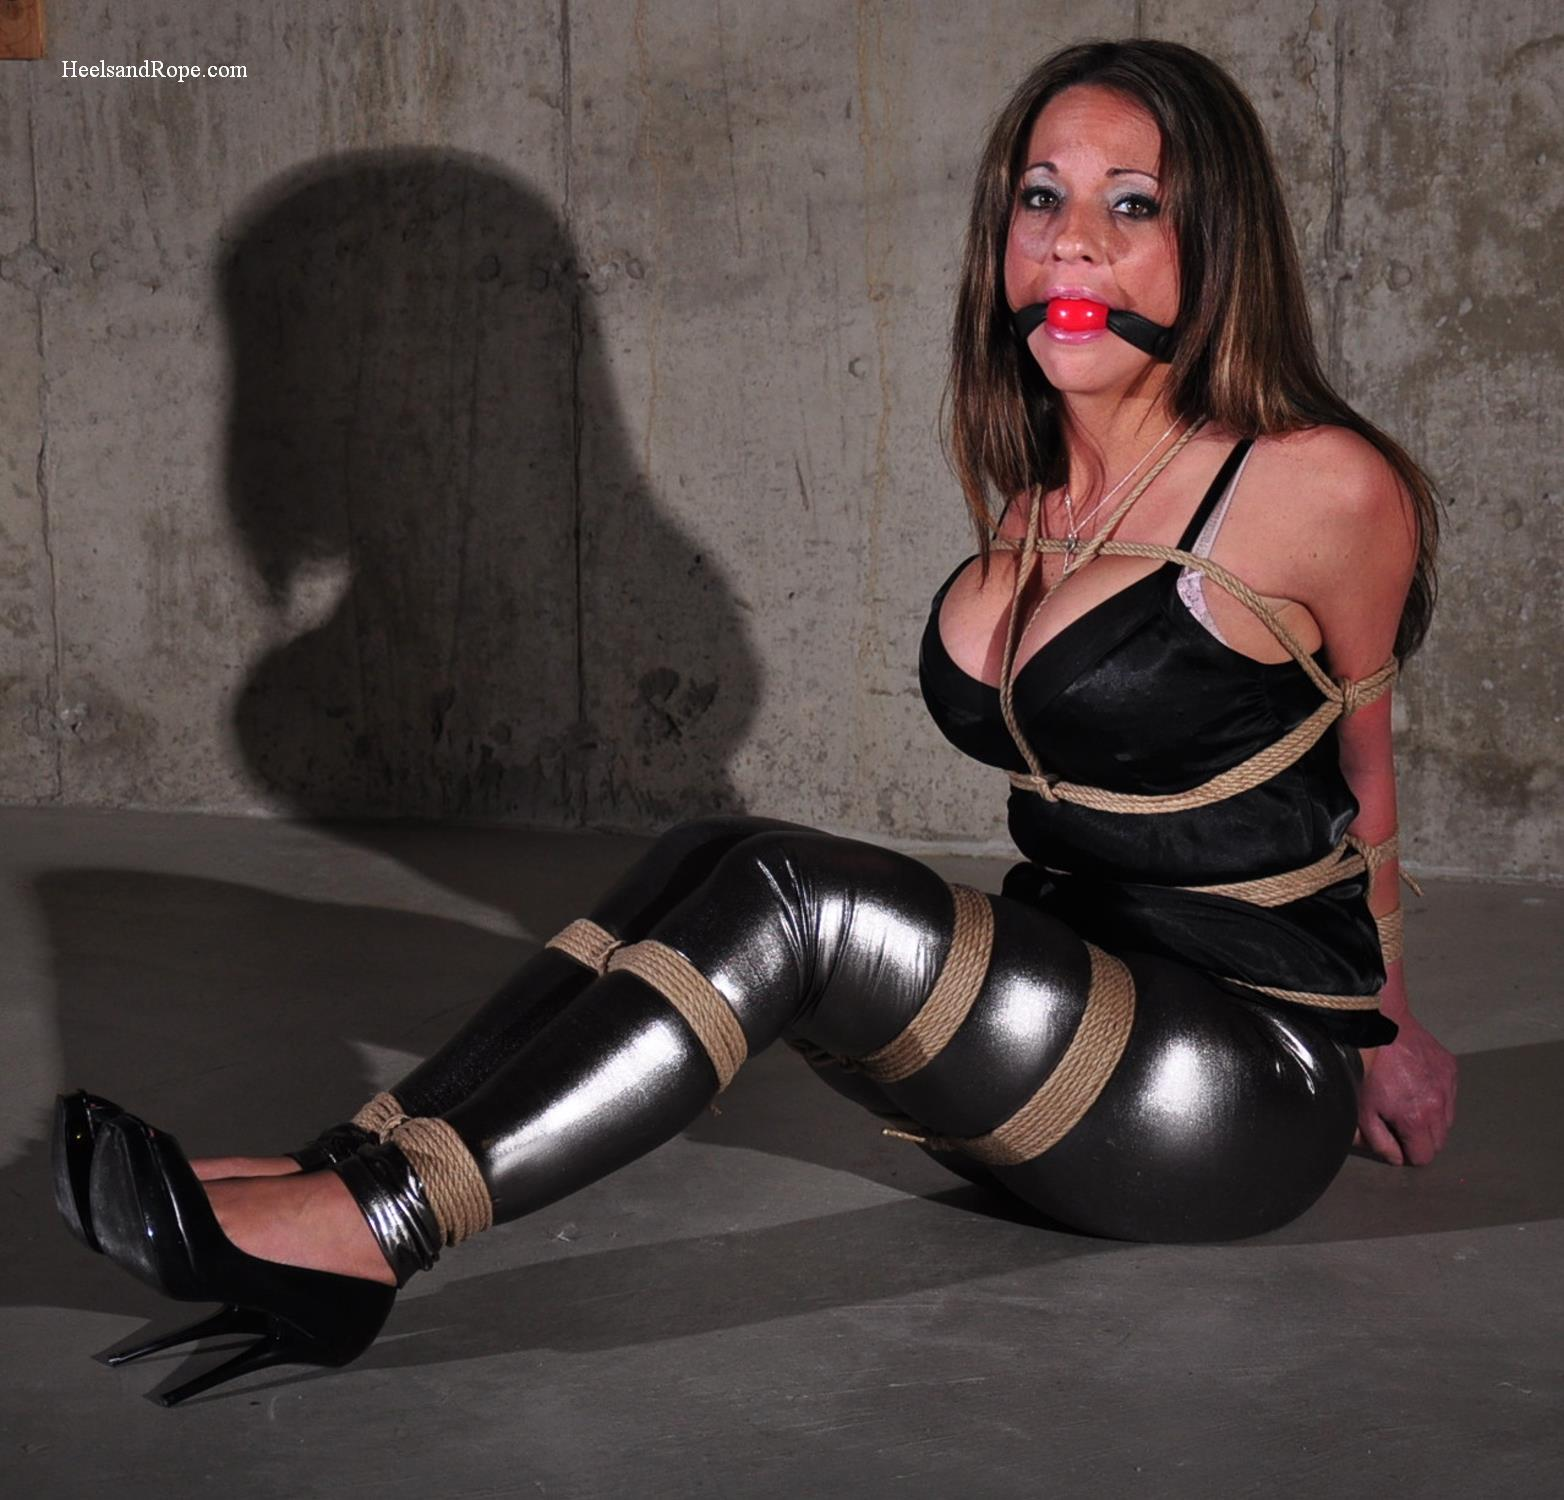 Tied up in spandex